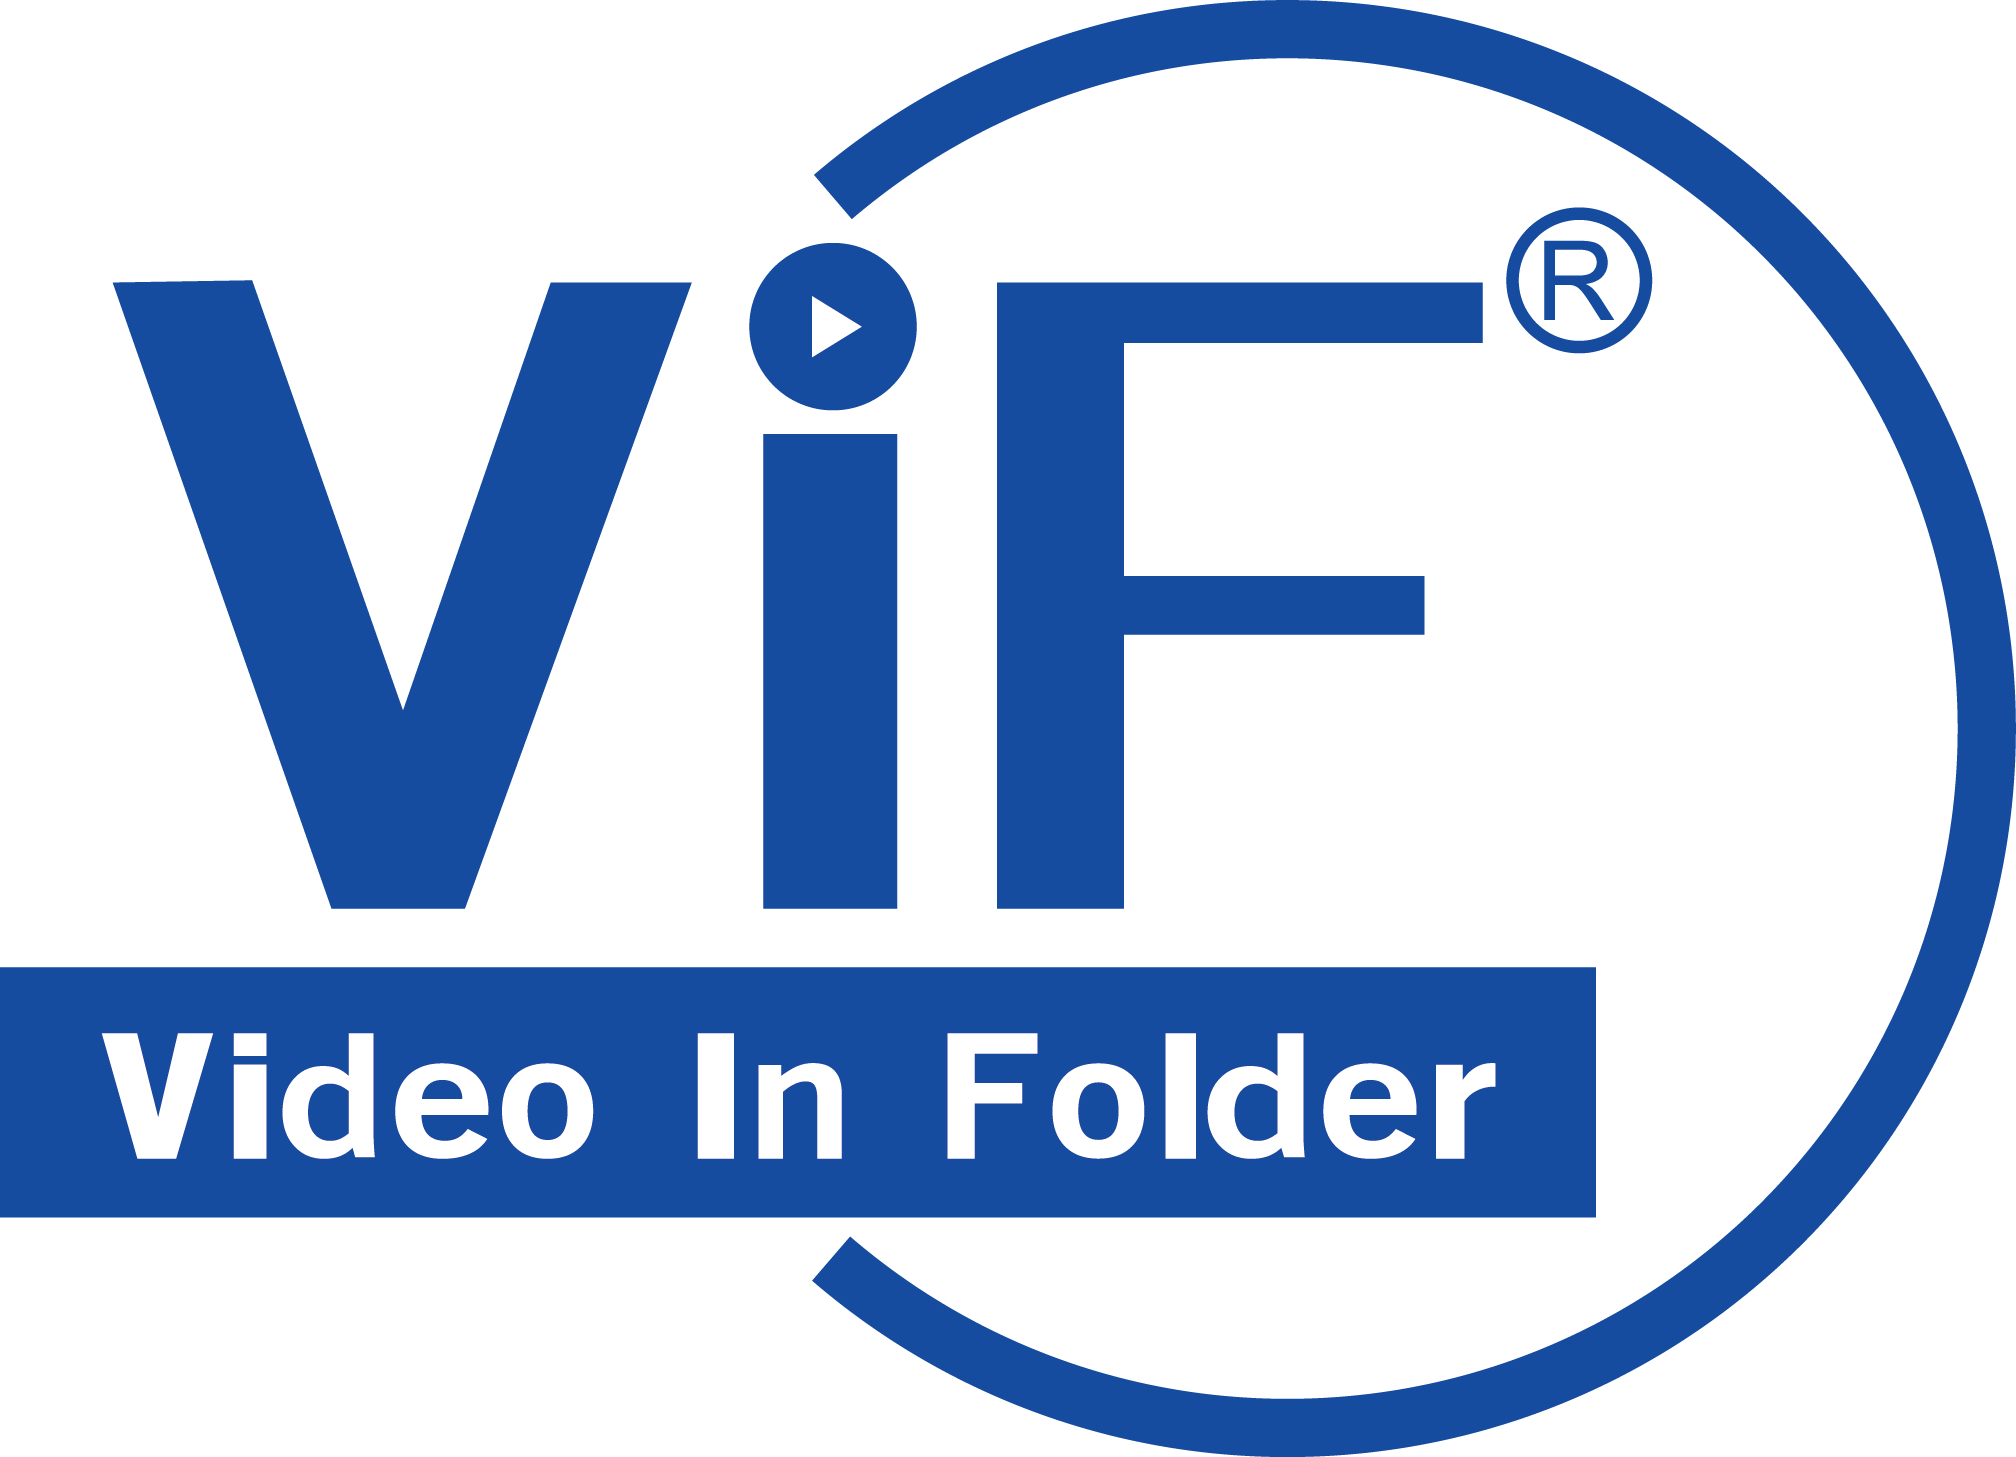 Shenzhen Videoinfolder Technology Co., Ltd logo